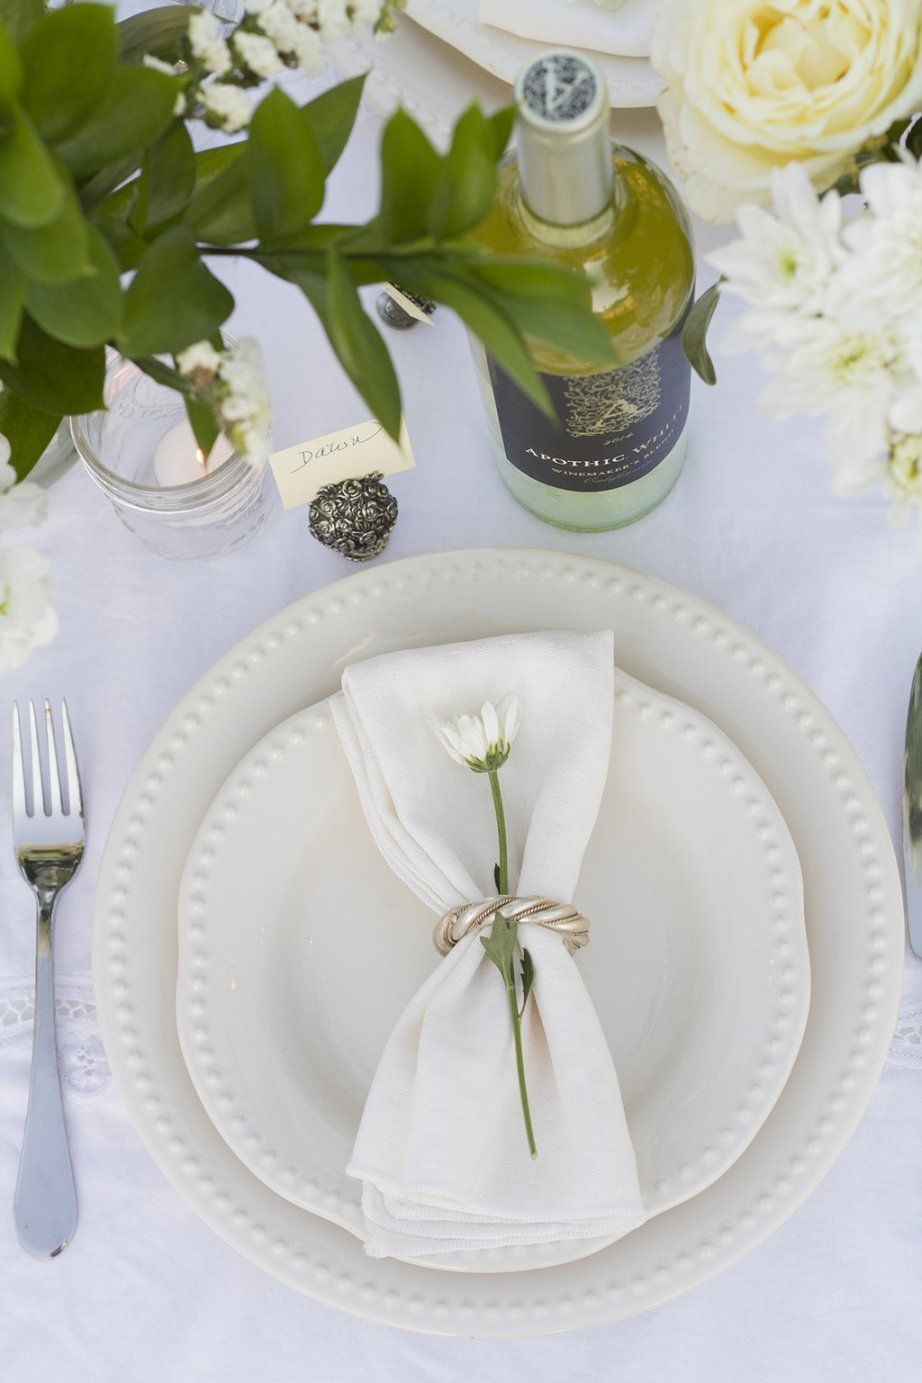 Diner en Blanc Place Setting Table Decor   The Rose Table